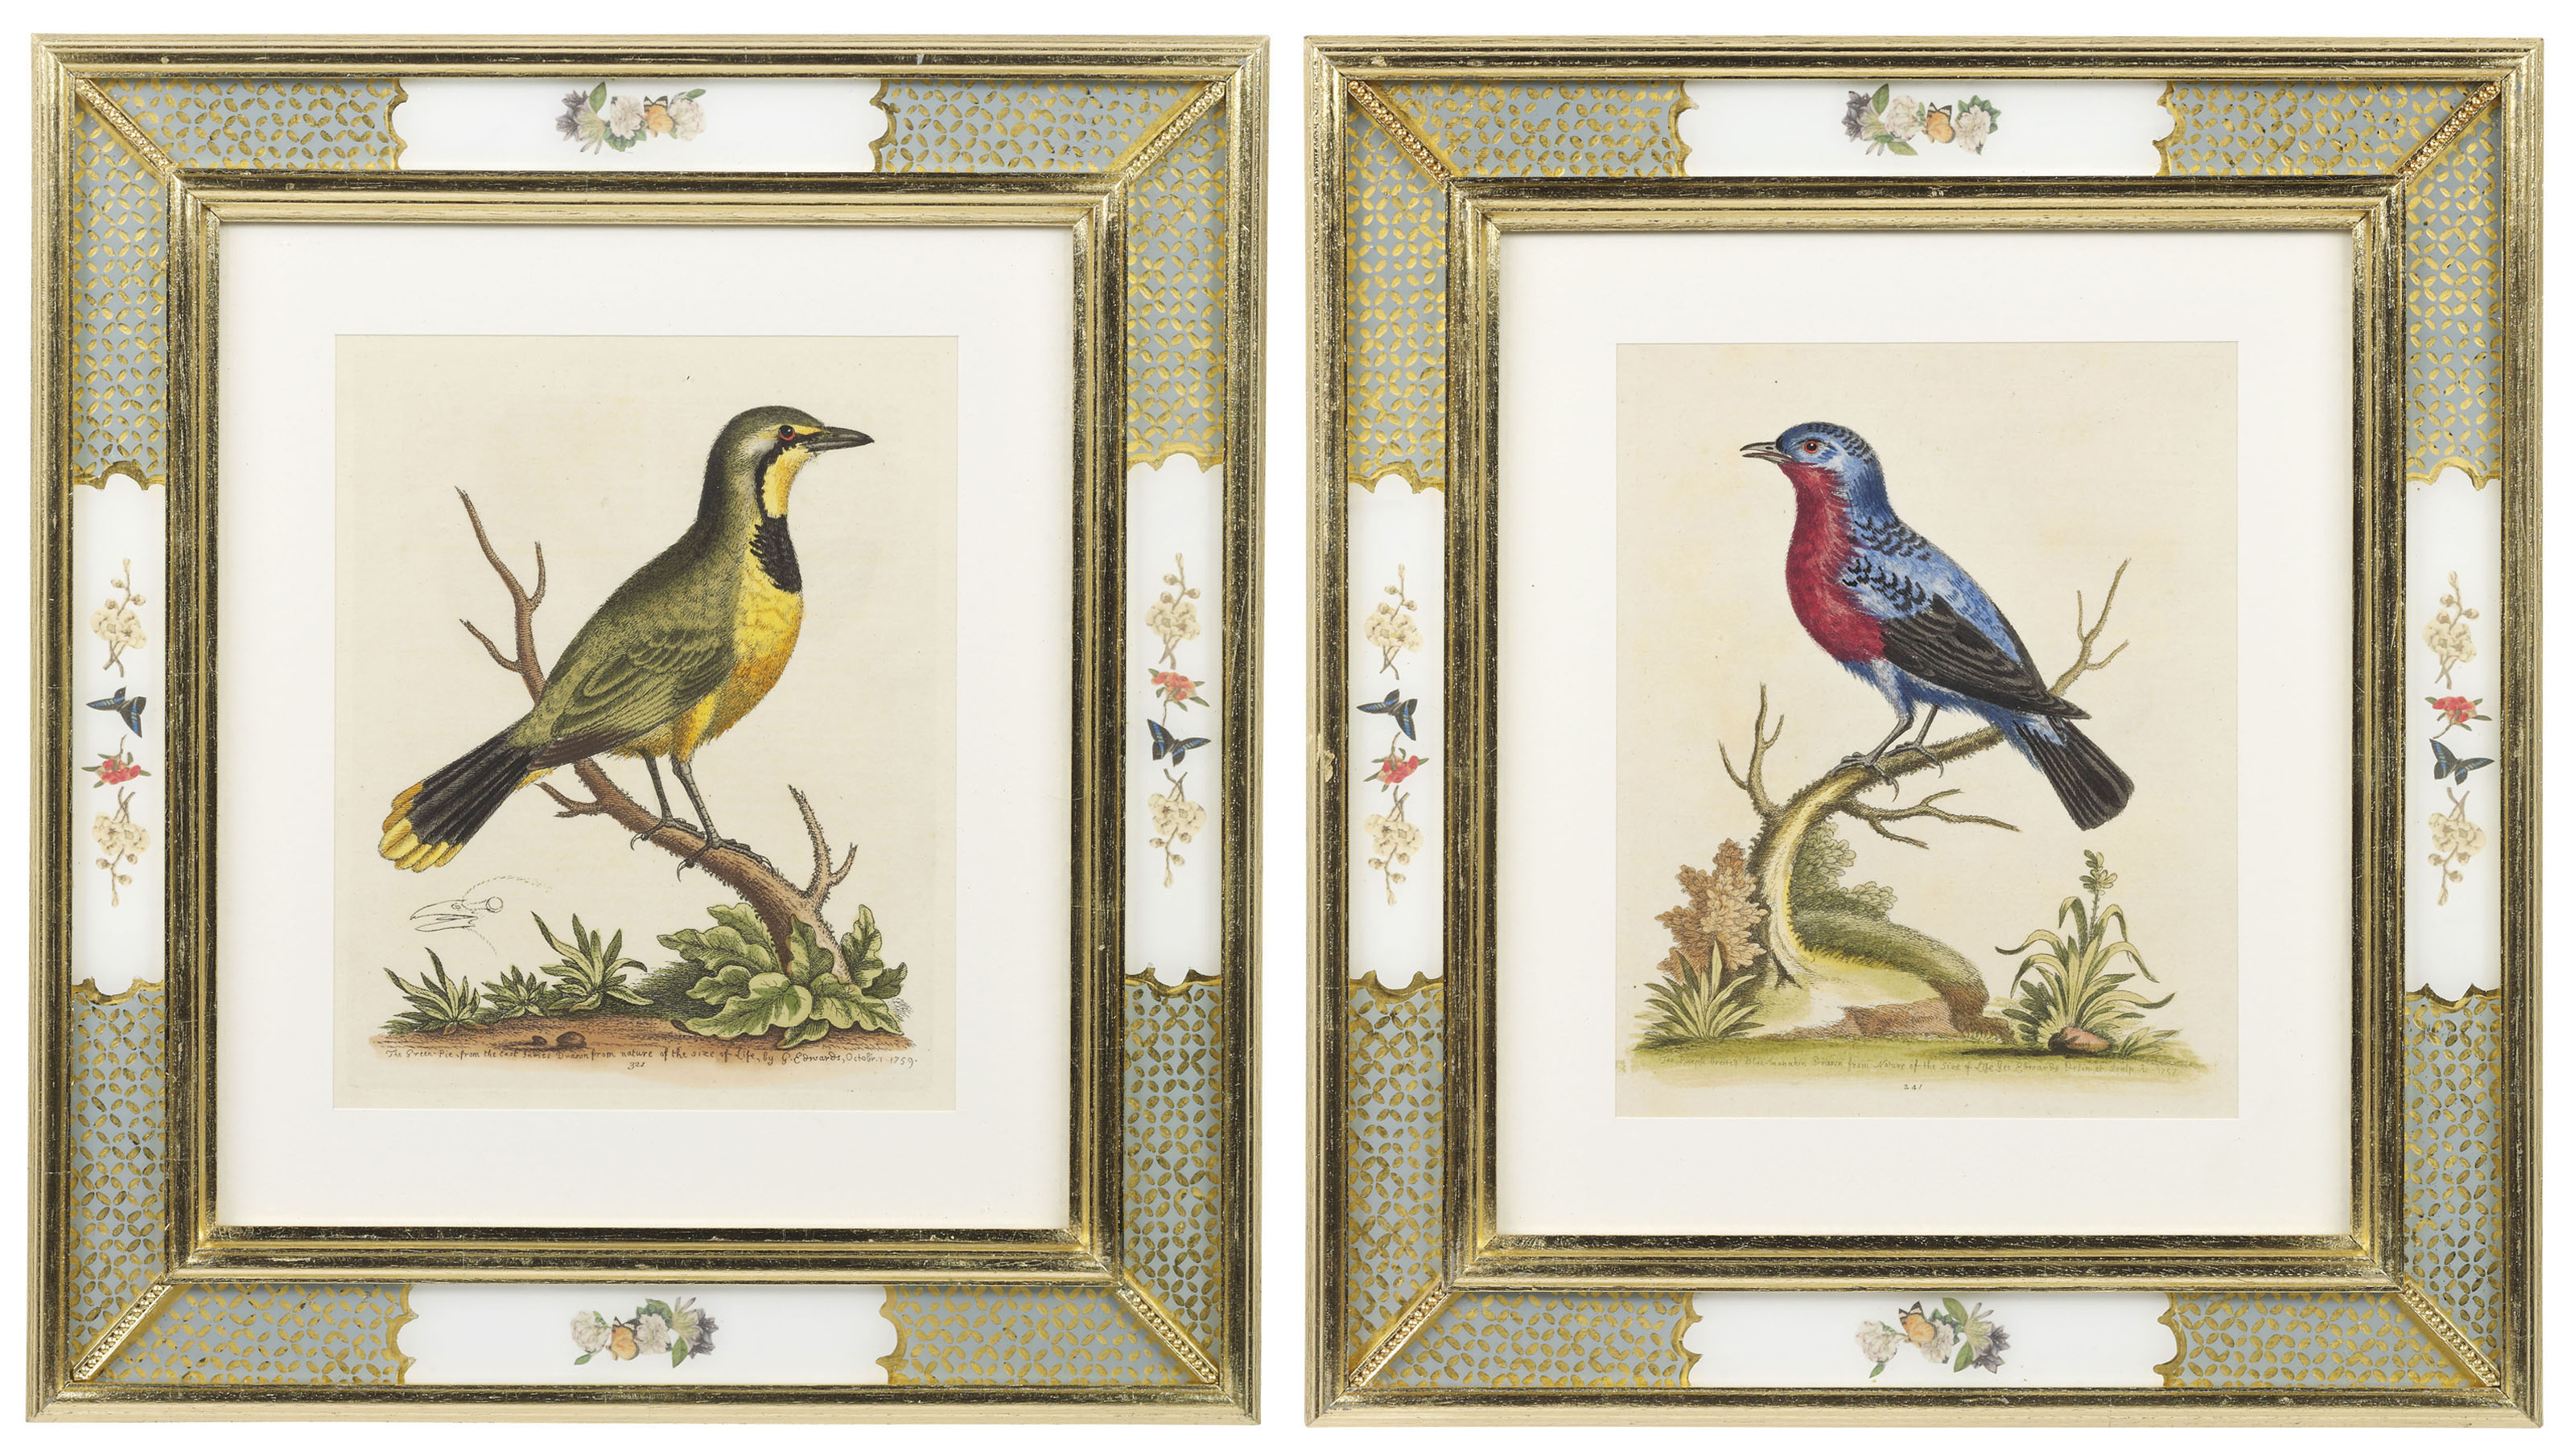 TWELVE HAND-COLOURED MEZZOTINTS FROM 'A NATURAL HISTORY OF UNCOMMON BIRDS'